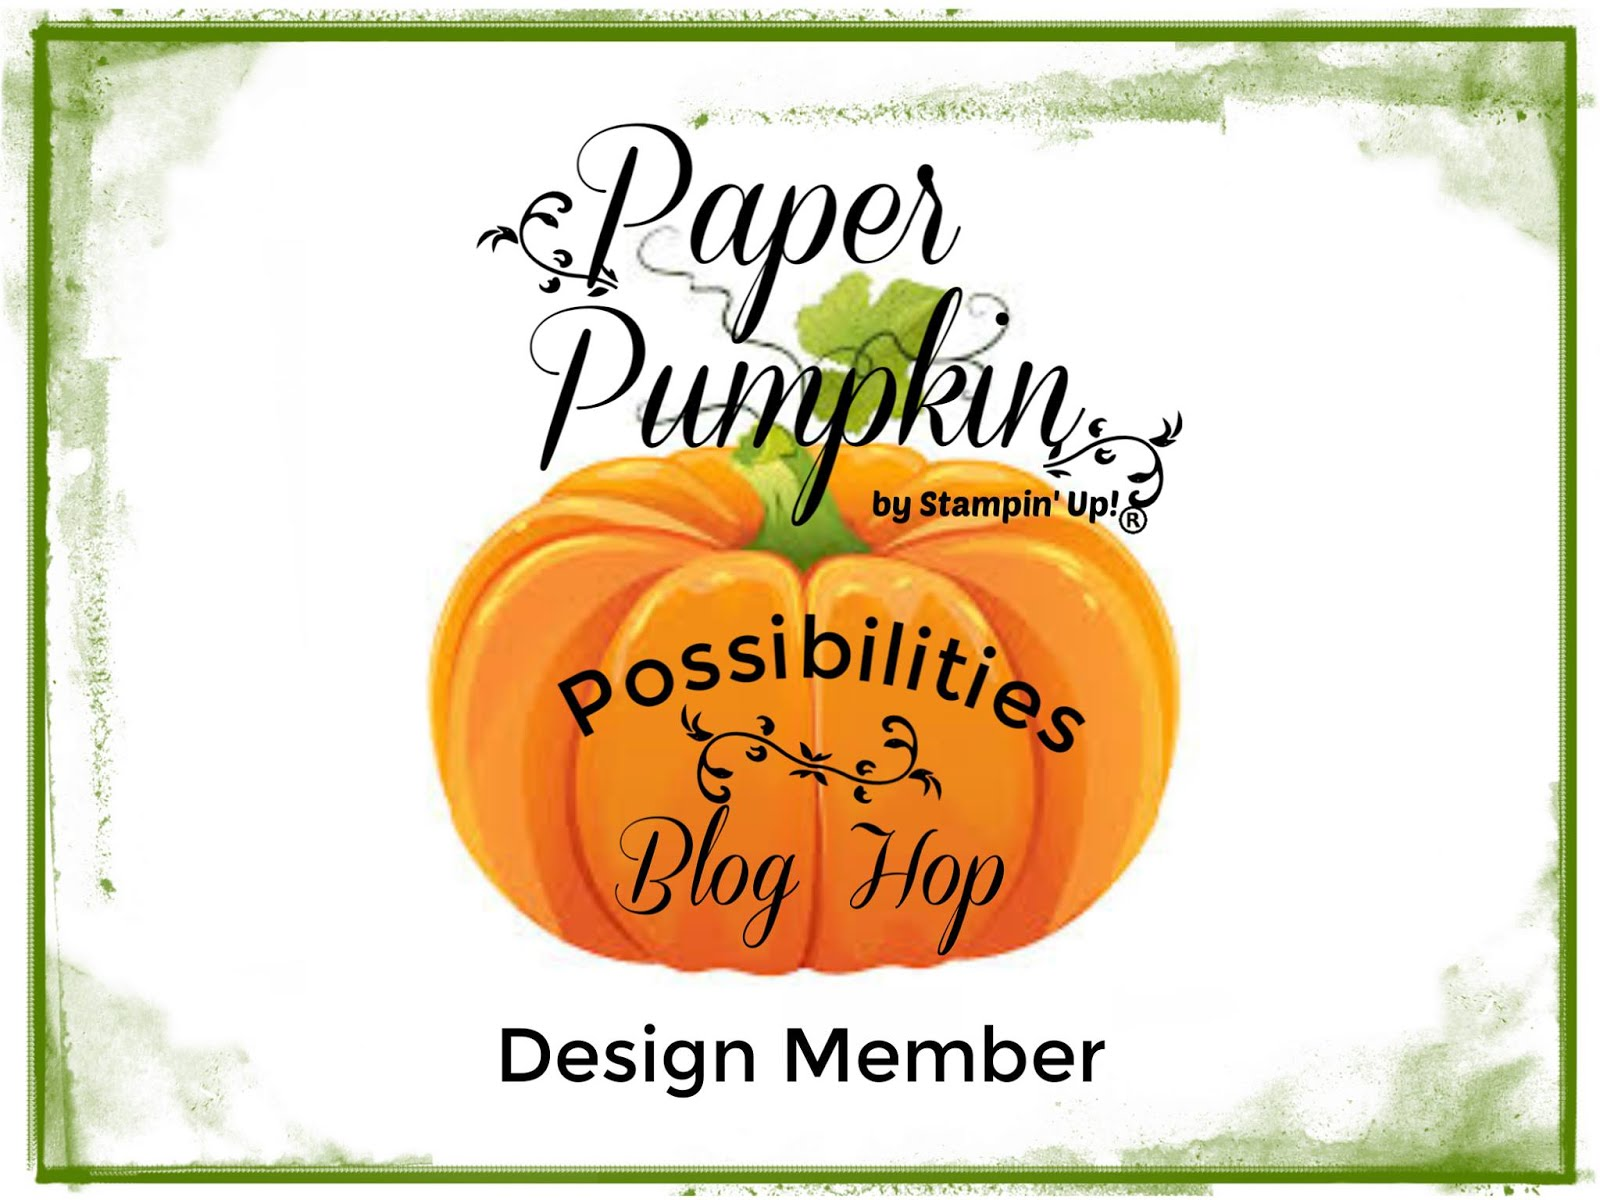 Paper Pumpkin Possibilities